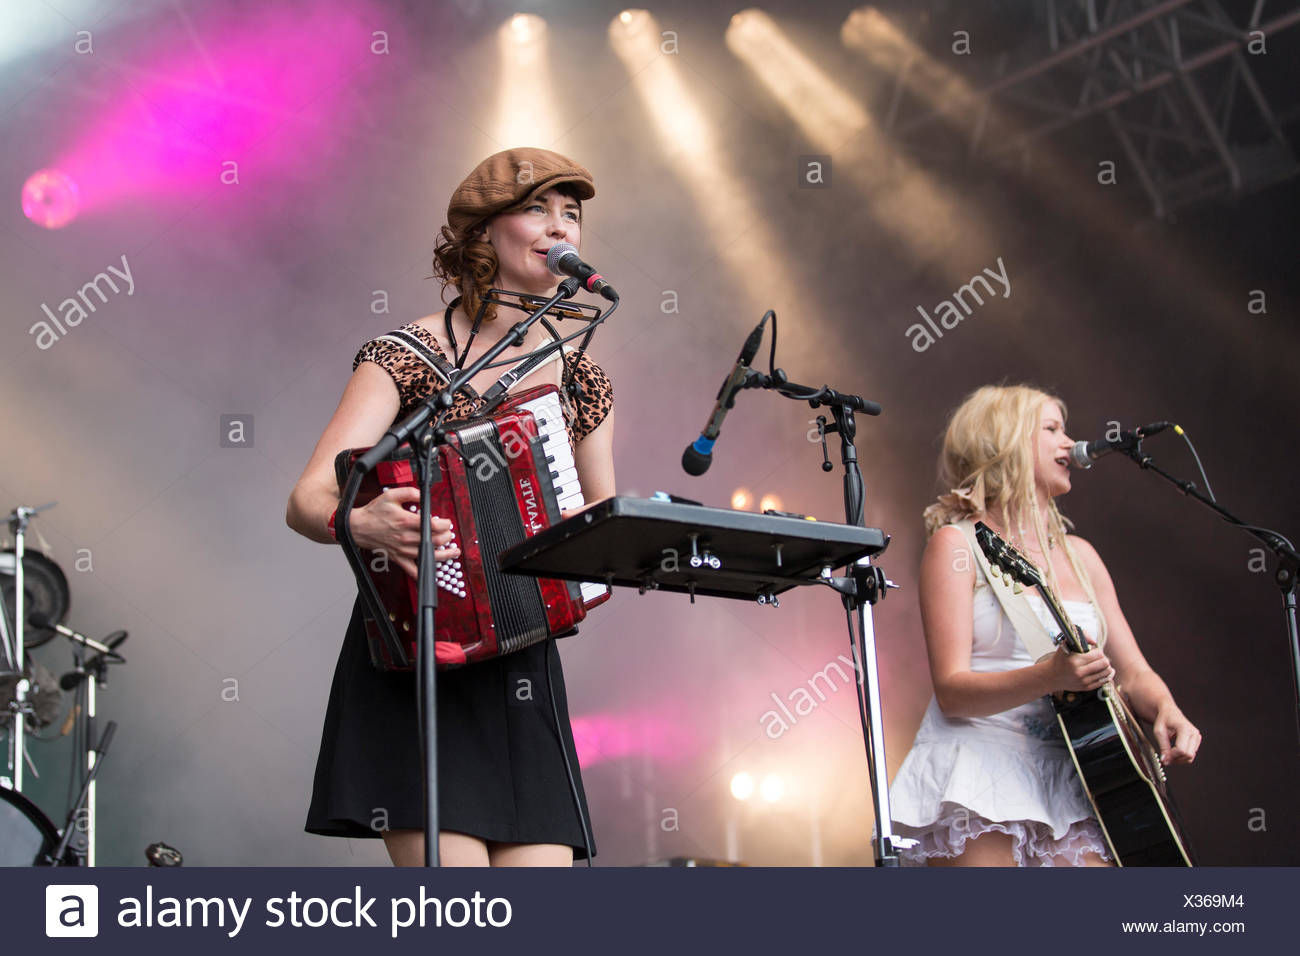 Solveig Heilo with a guitar and Anne Marit Bergheim with an accordion from the Norwegian girl band Katzenjammer performing live - Stock Image